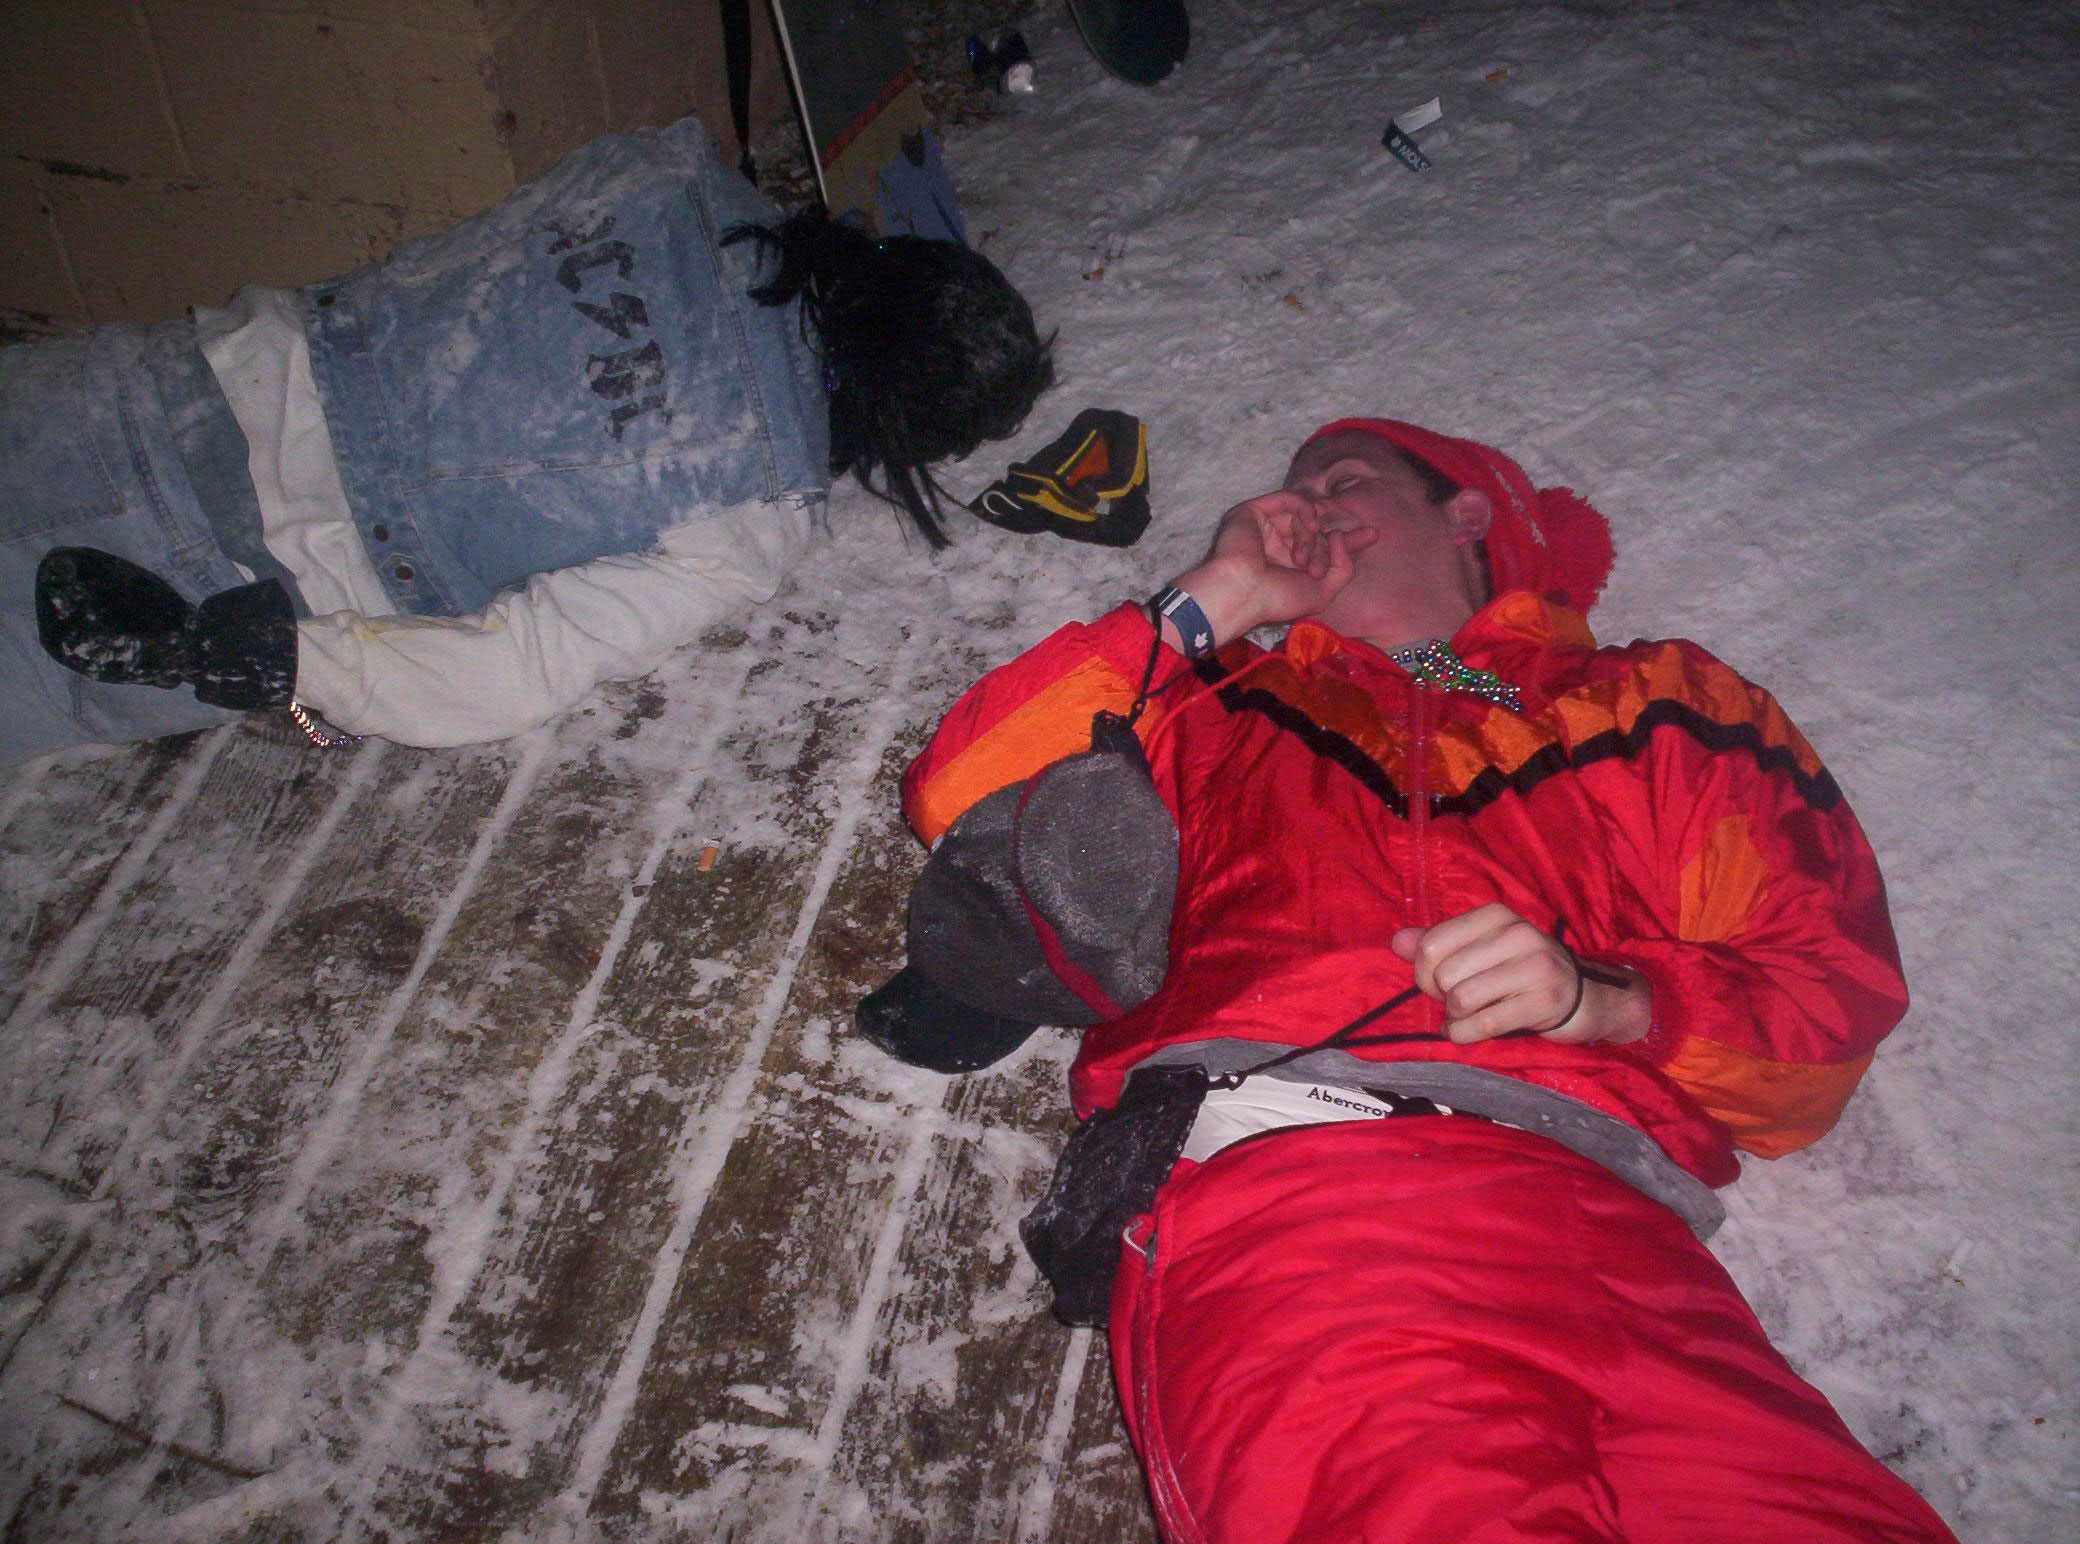 Passed Out Snowboarders